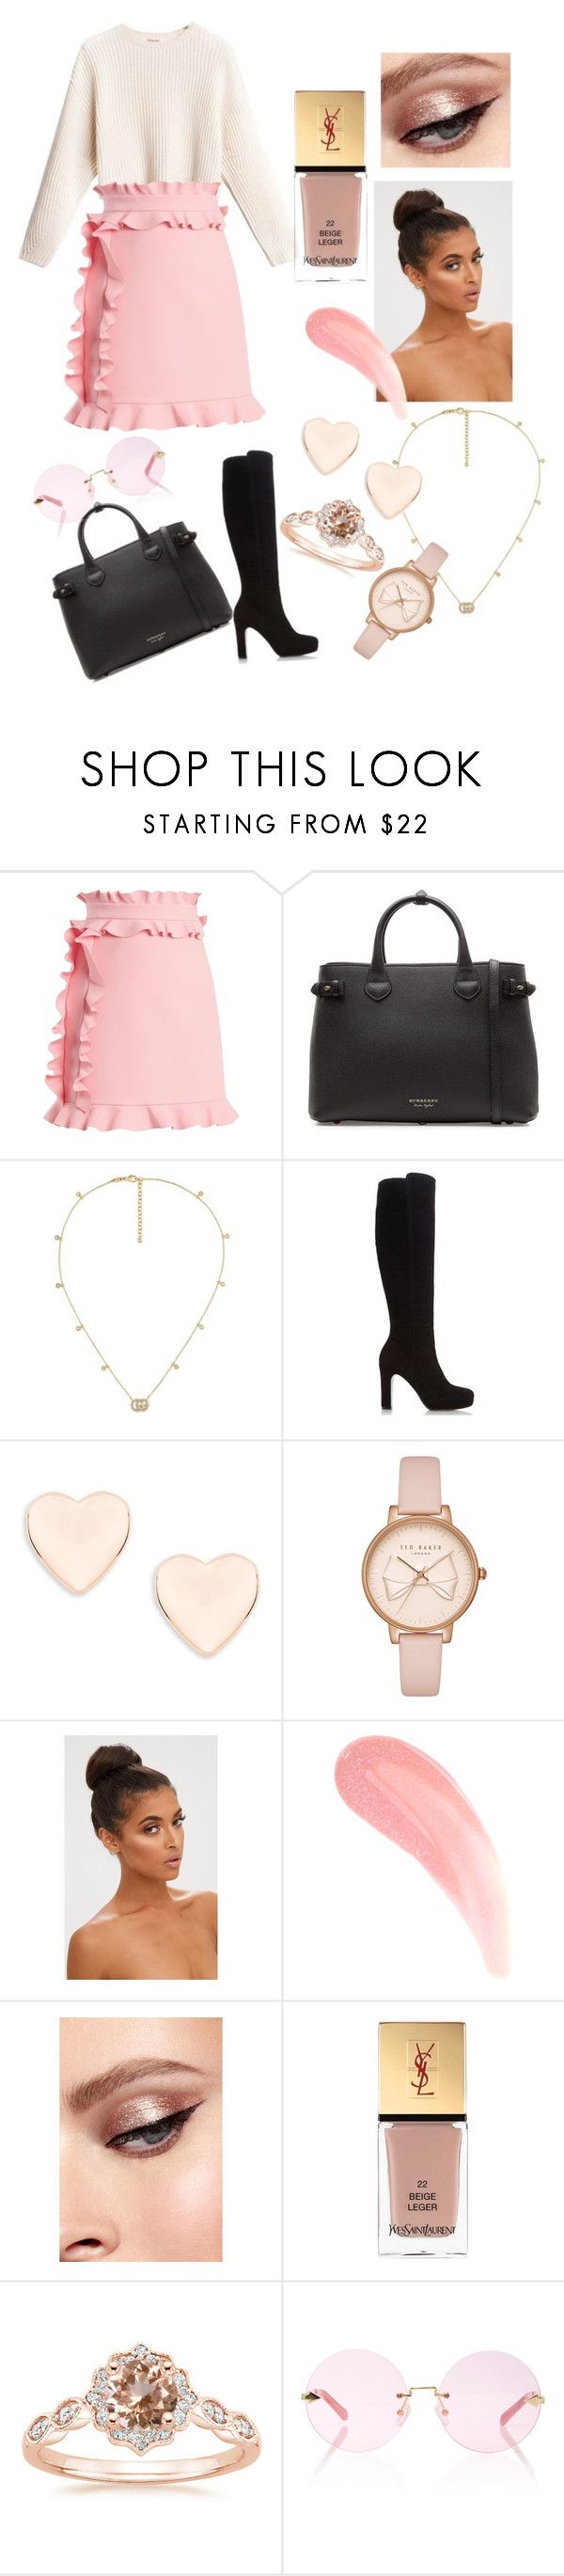 """""""Hana"""" by judehassan on Polyvore featuring MSGM, Burberry, Gucci, Dune, Ted Baker, Yves Saint Laurent and Karen Walker"""